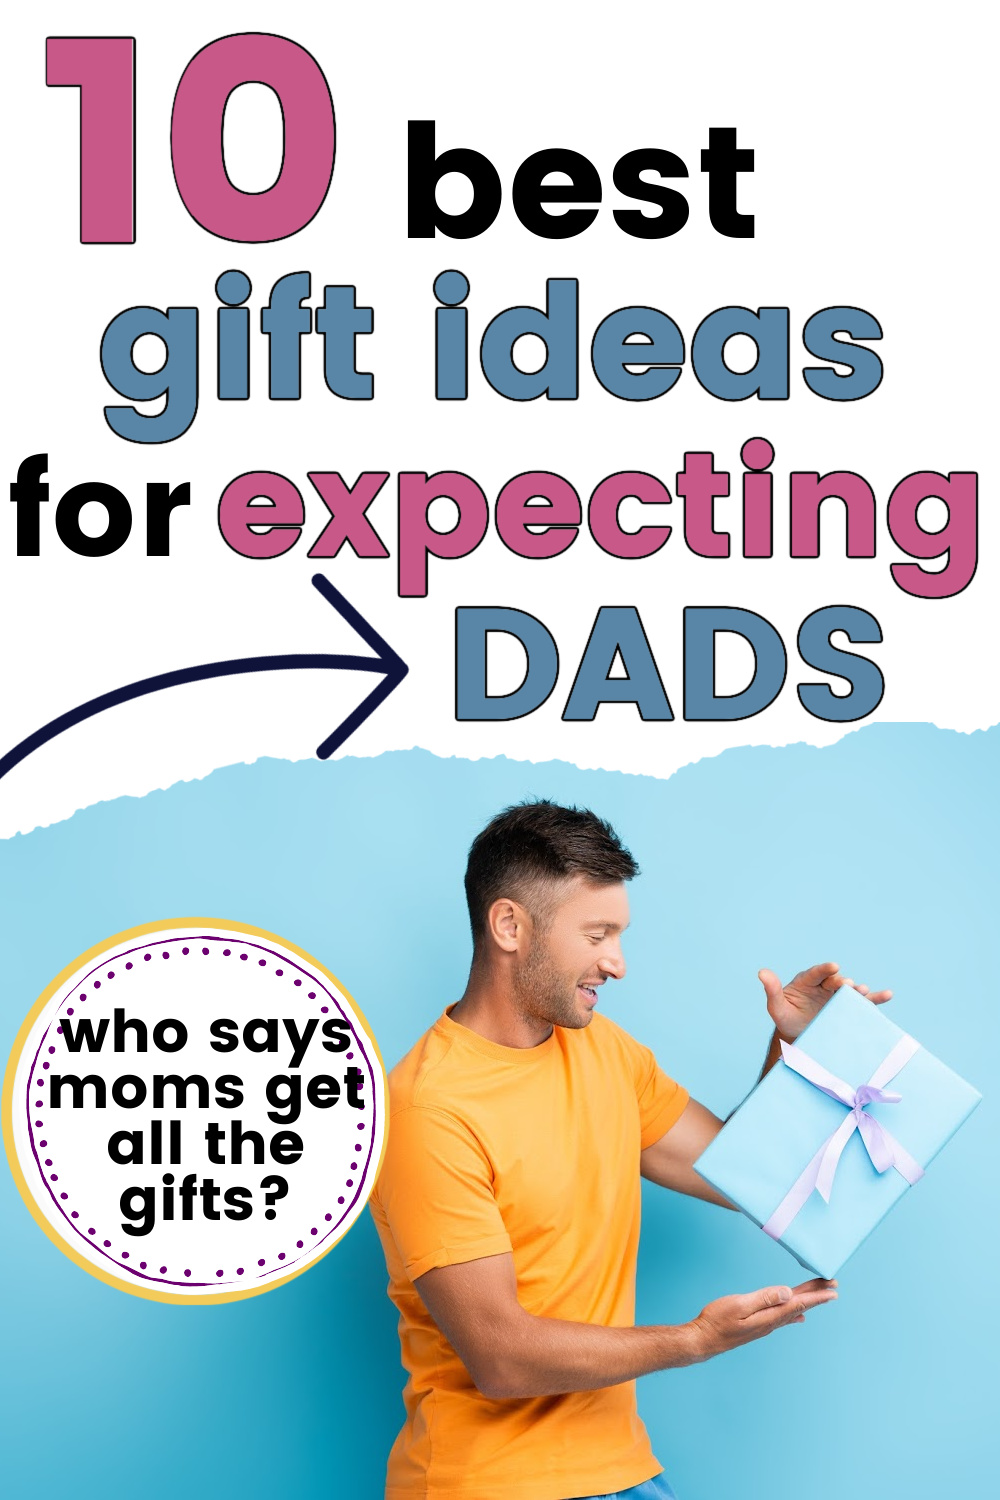 "new dad receiving Father's Day or Christmas gift with text overlay ""10 best gift ideas for expecting dads"""